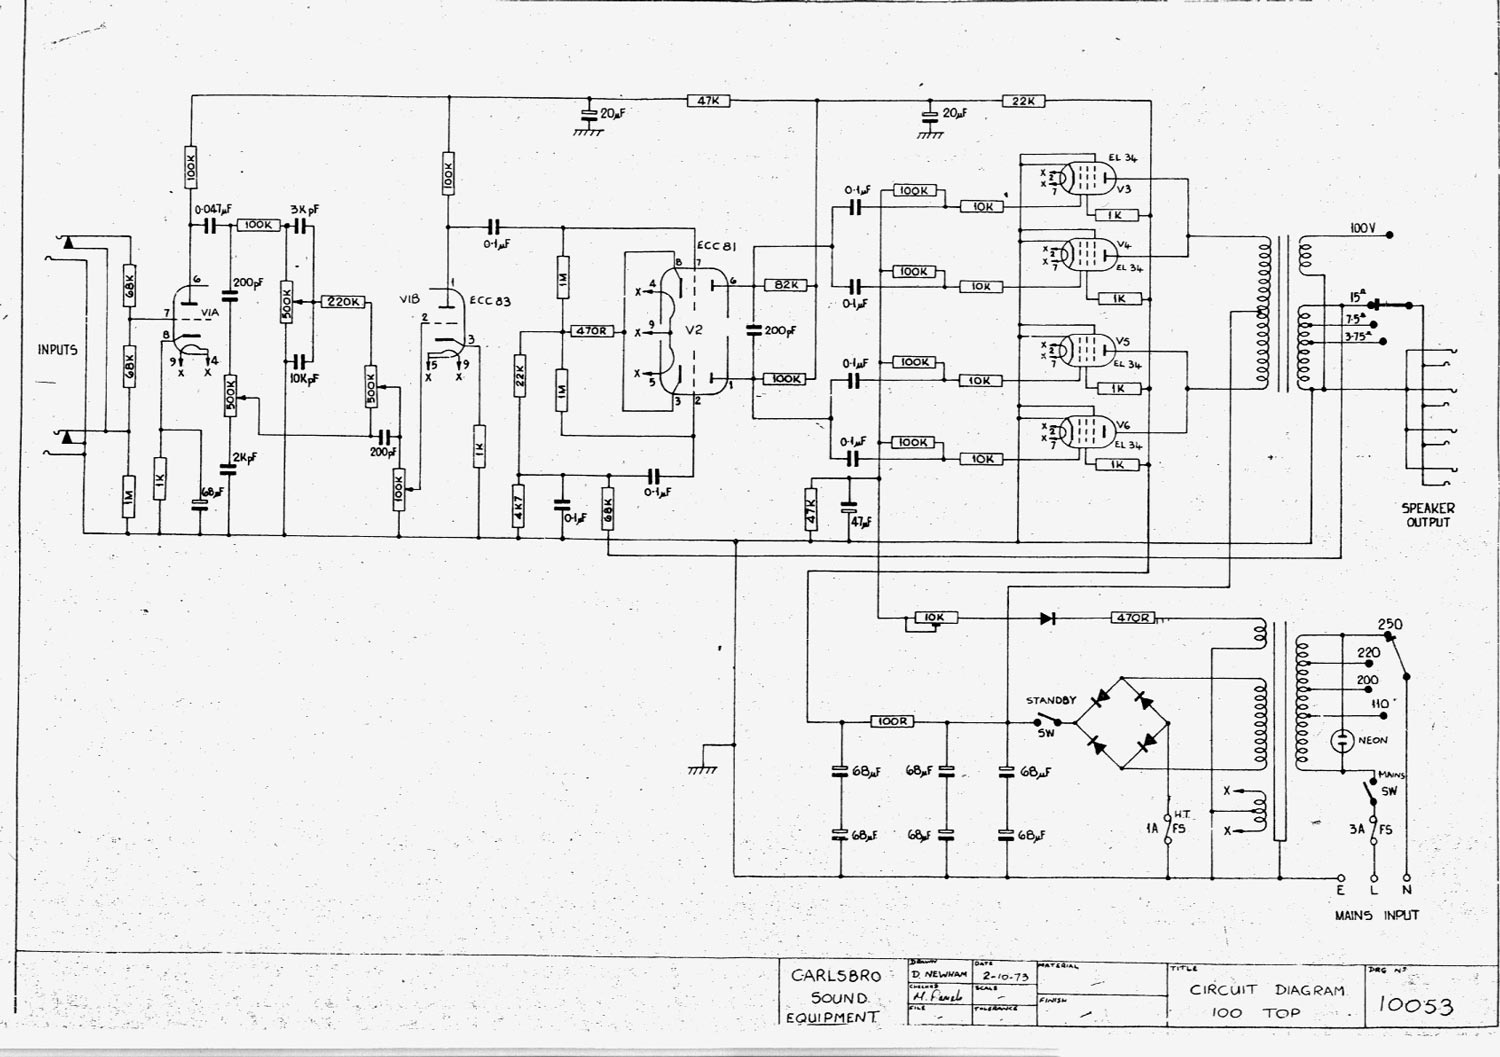 carlsbro 100 top amplifier schematic diagram. Black Bedroom Furniture Sets. Home Design Ideas